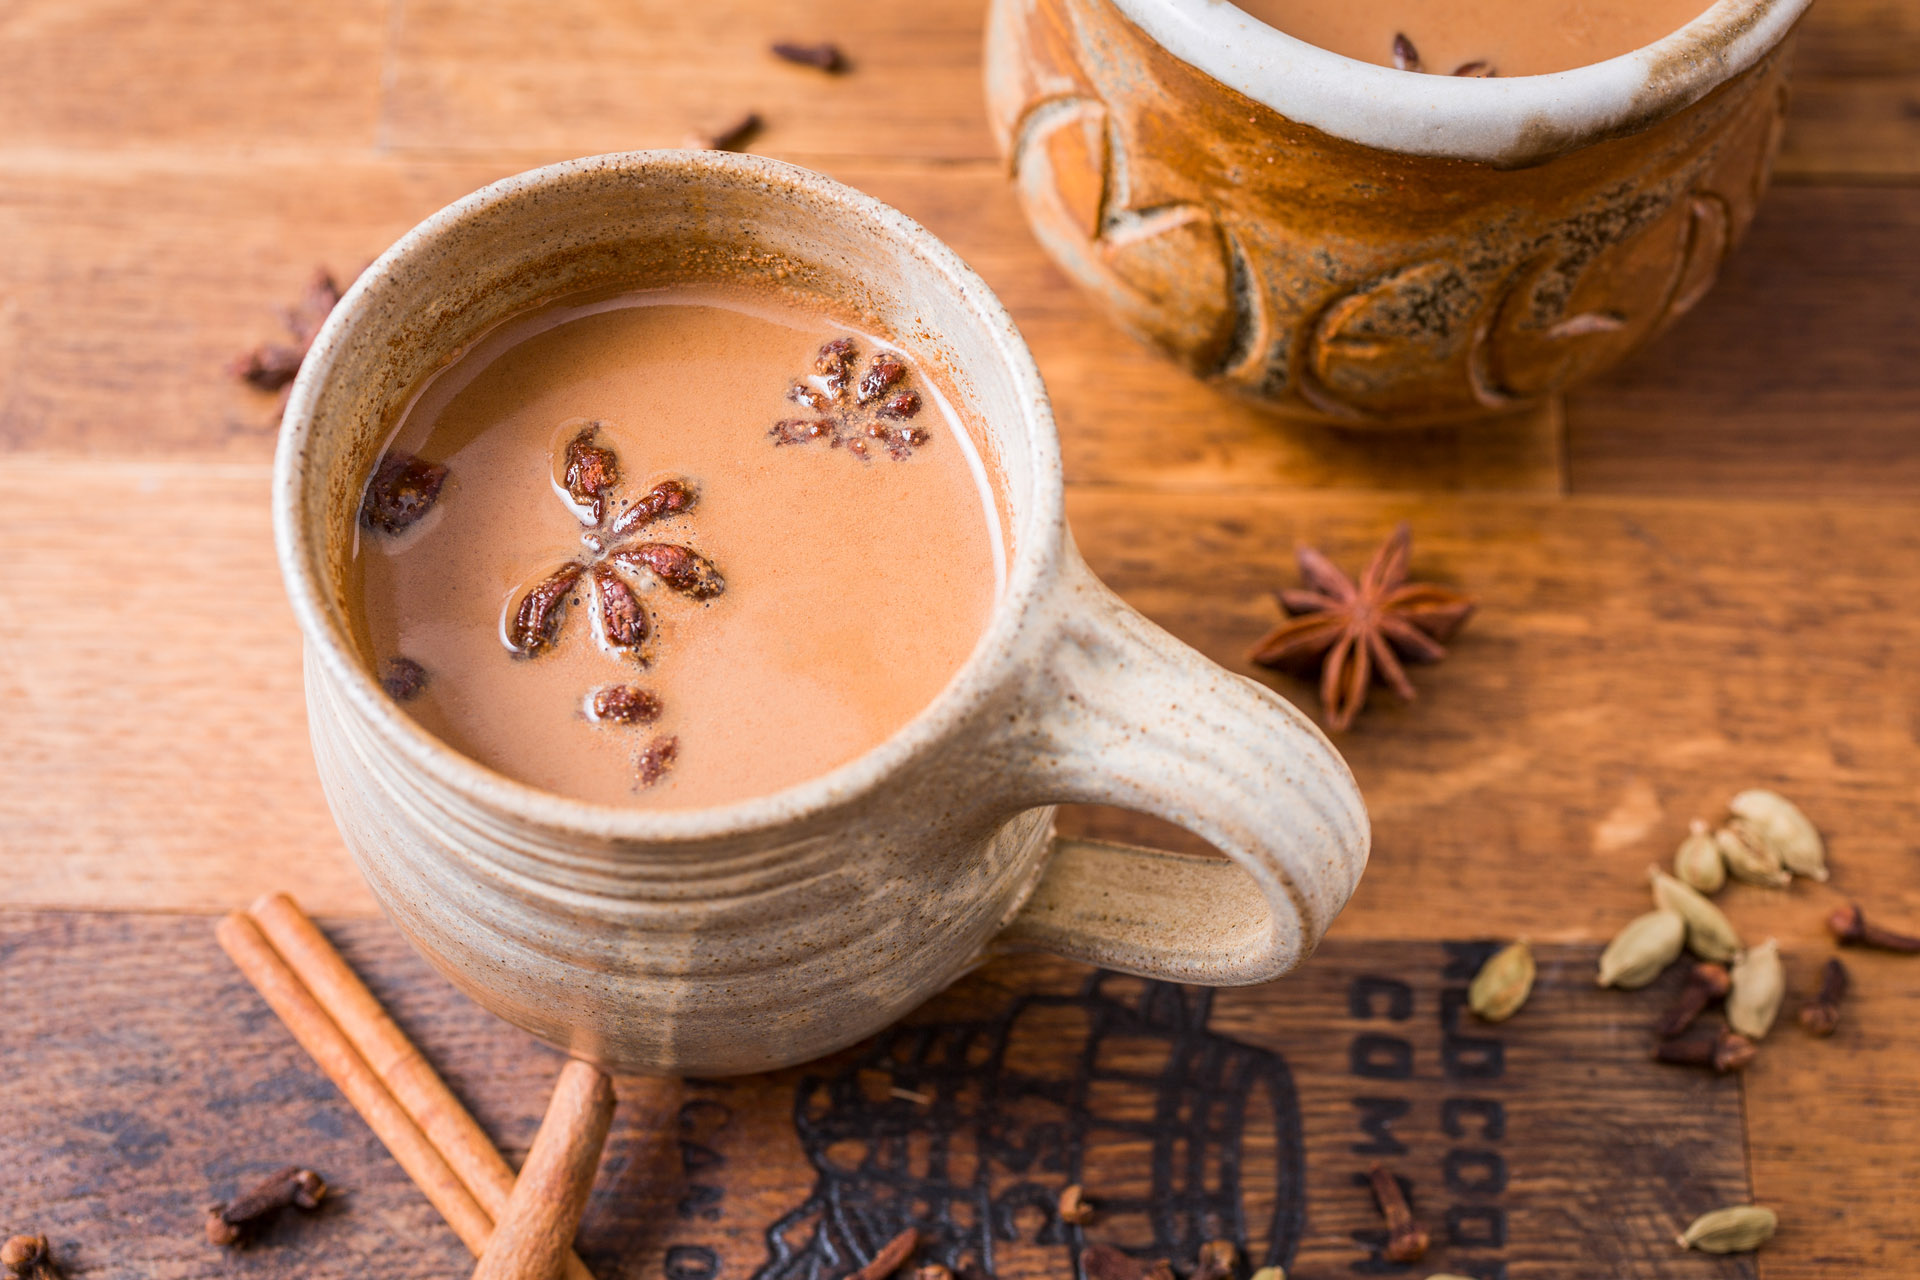 The Chai Hot Toddy